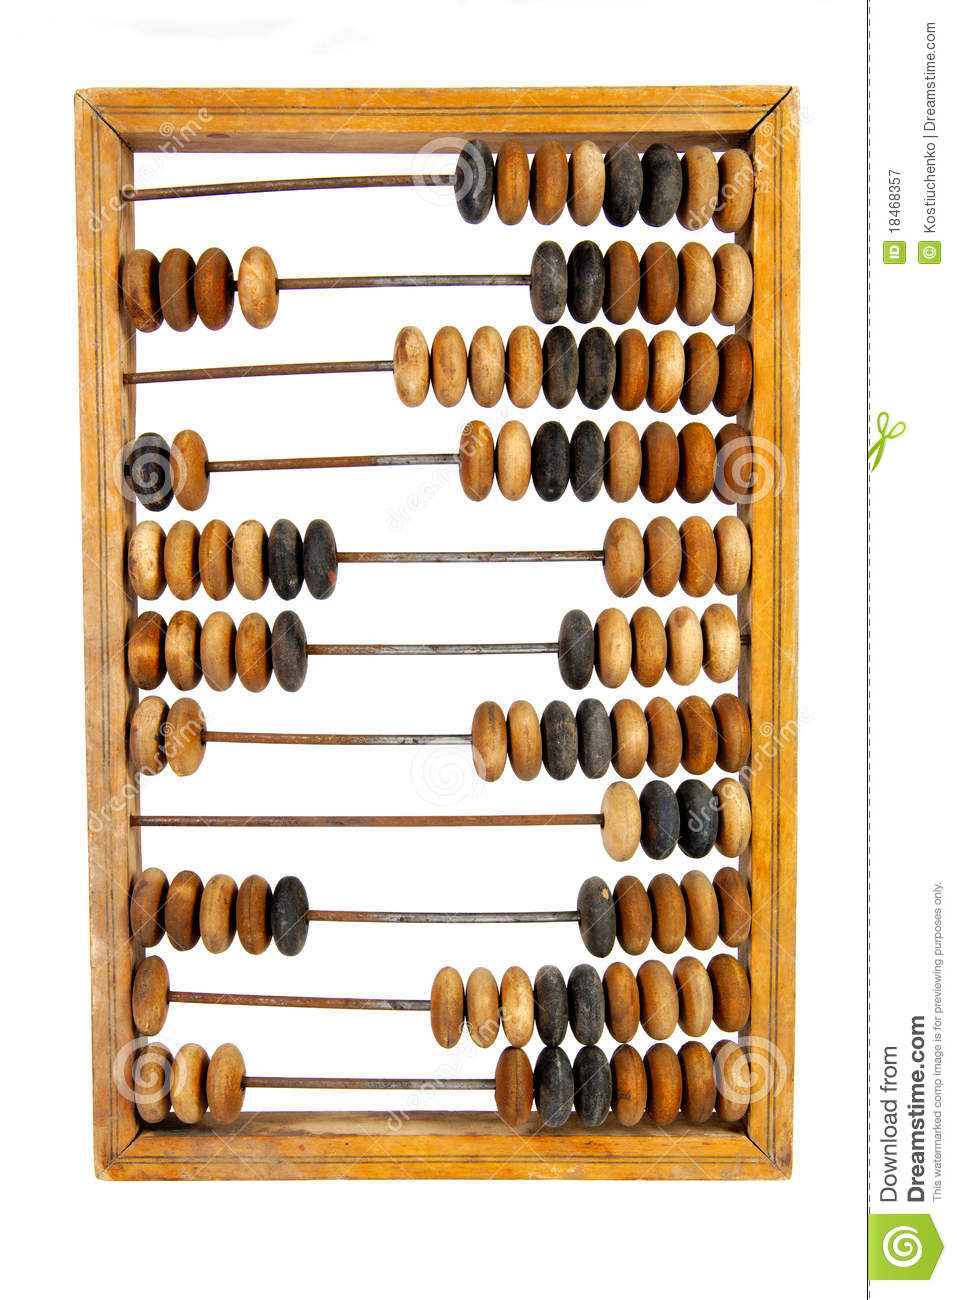 how to use abacus calculator pdf